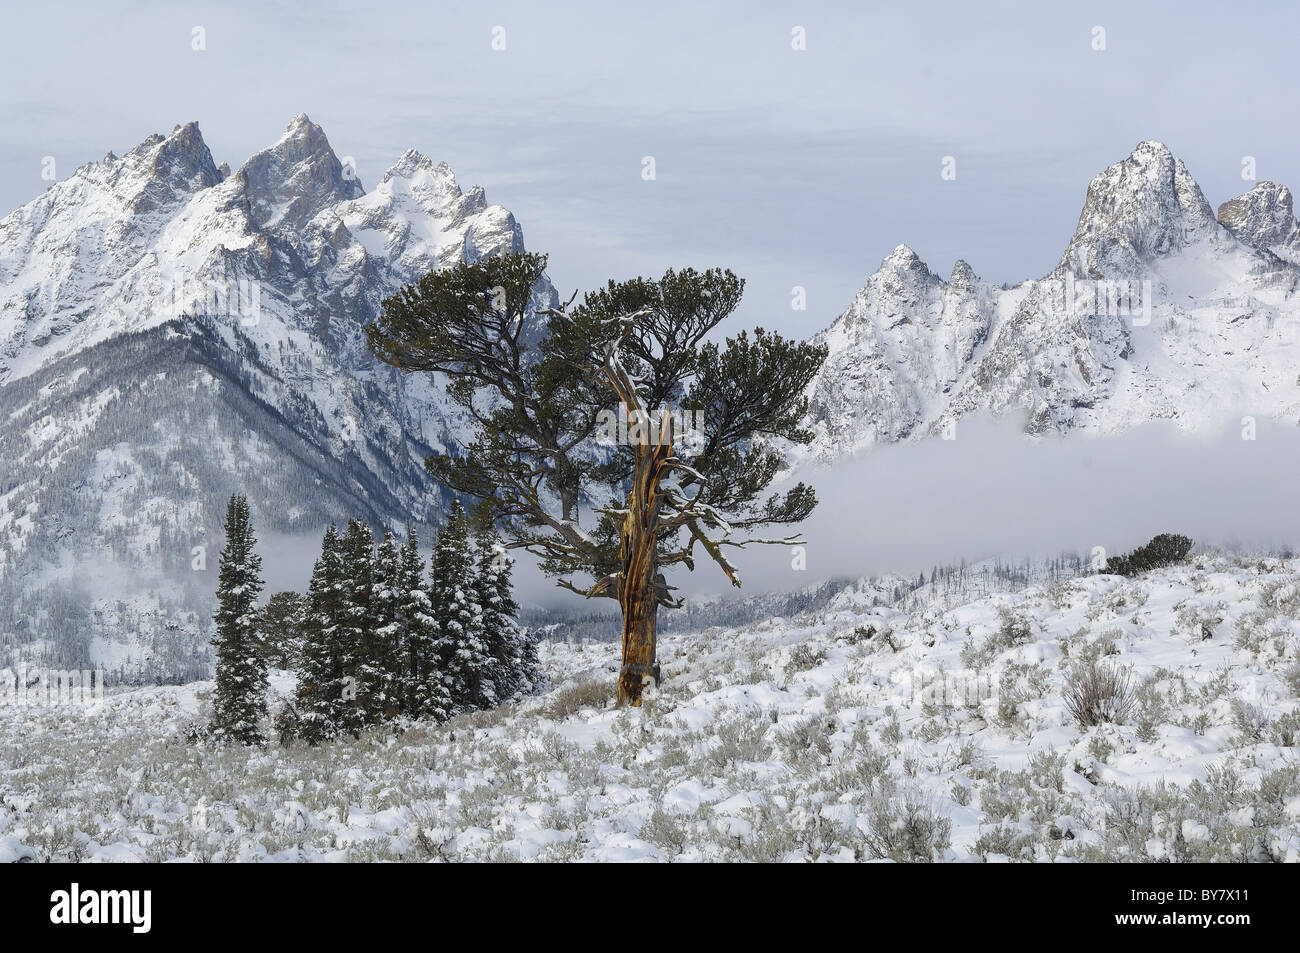 Old Patriarch Tree the morning after snowstorm in Grand Teton National Park. - Stock Image